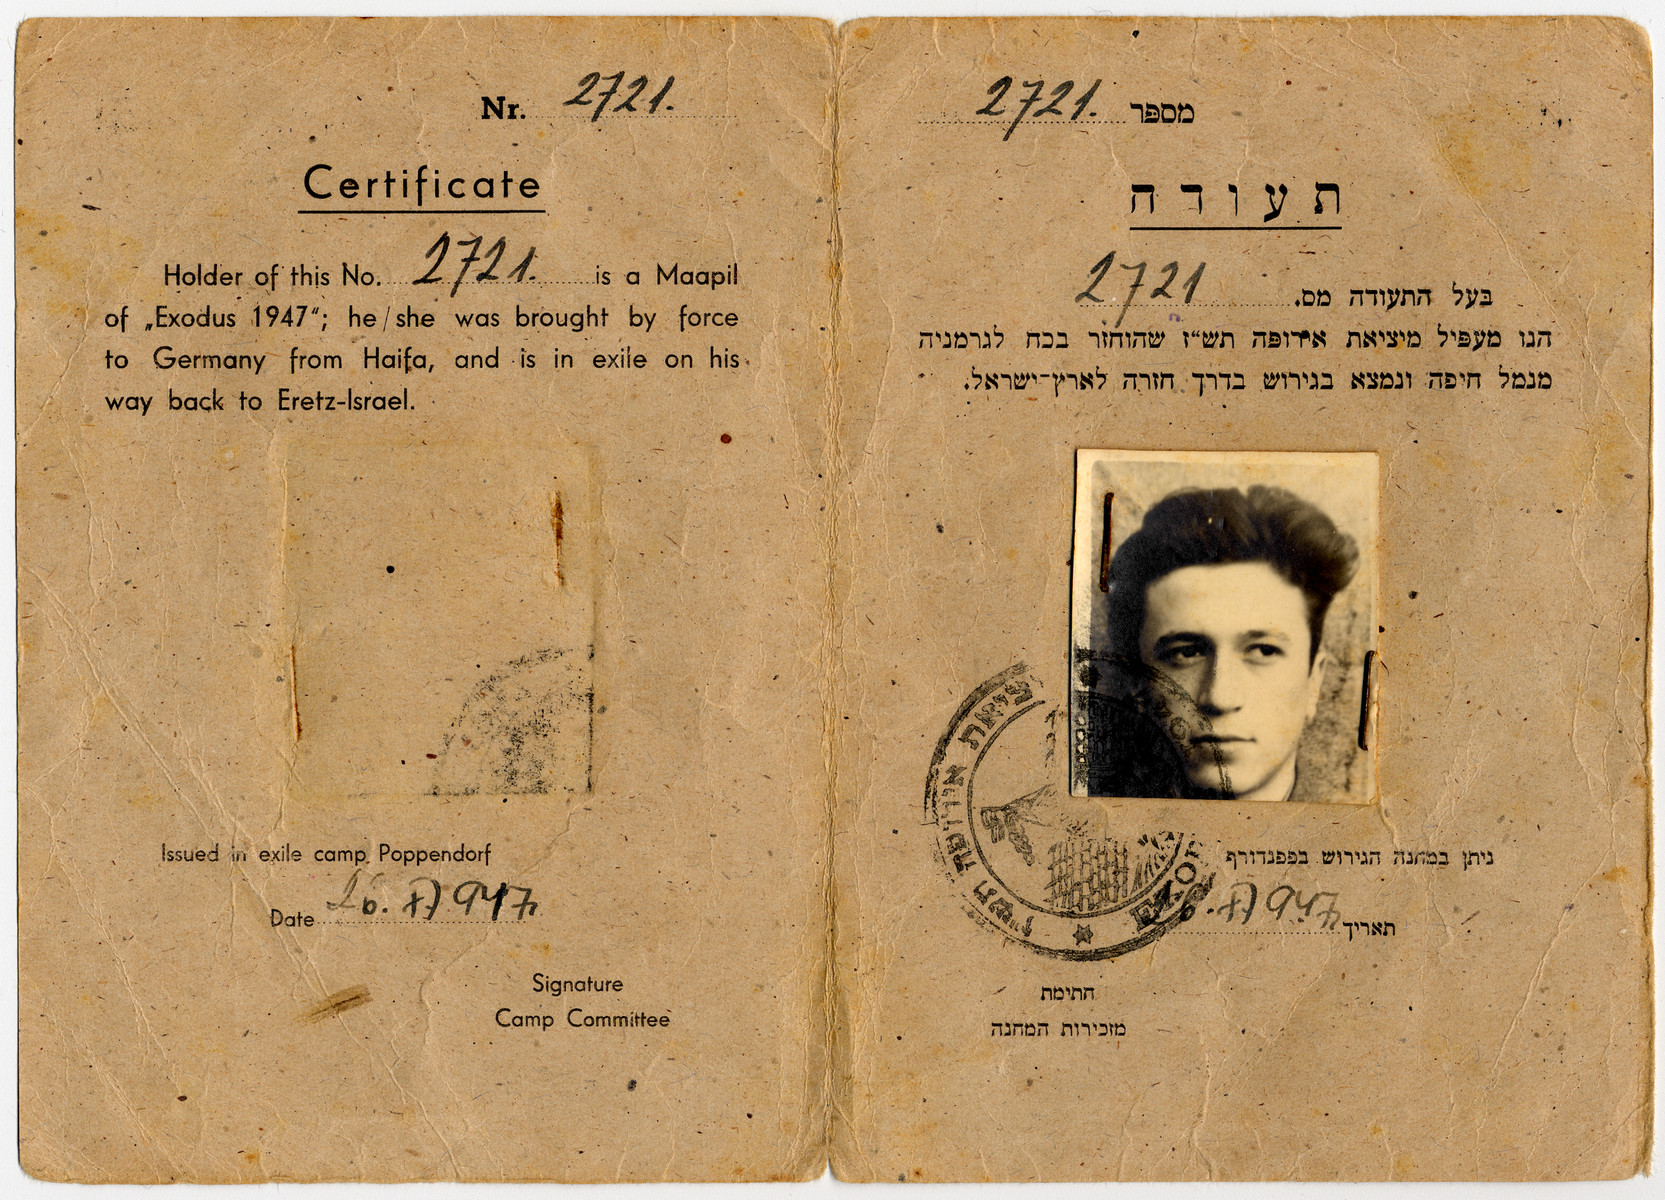 """Exodus certificate issued to Chanina Kam in the Poppendorf displaced persons' camp.  The text inside reads """"Holder of this No. is a Maapil of """"Exodus 1947""""; he/she was brought by force to Germany from Haifa, and is in exile on his way back to Eretz-Israel""""."""